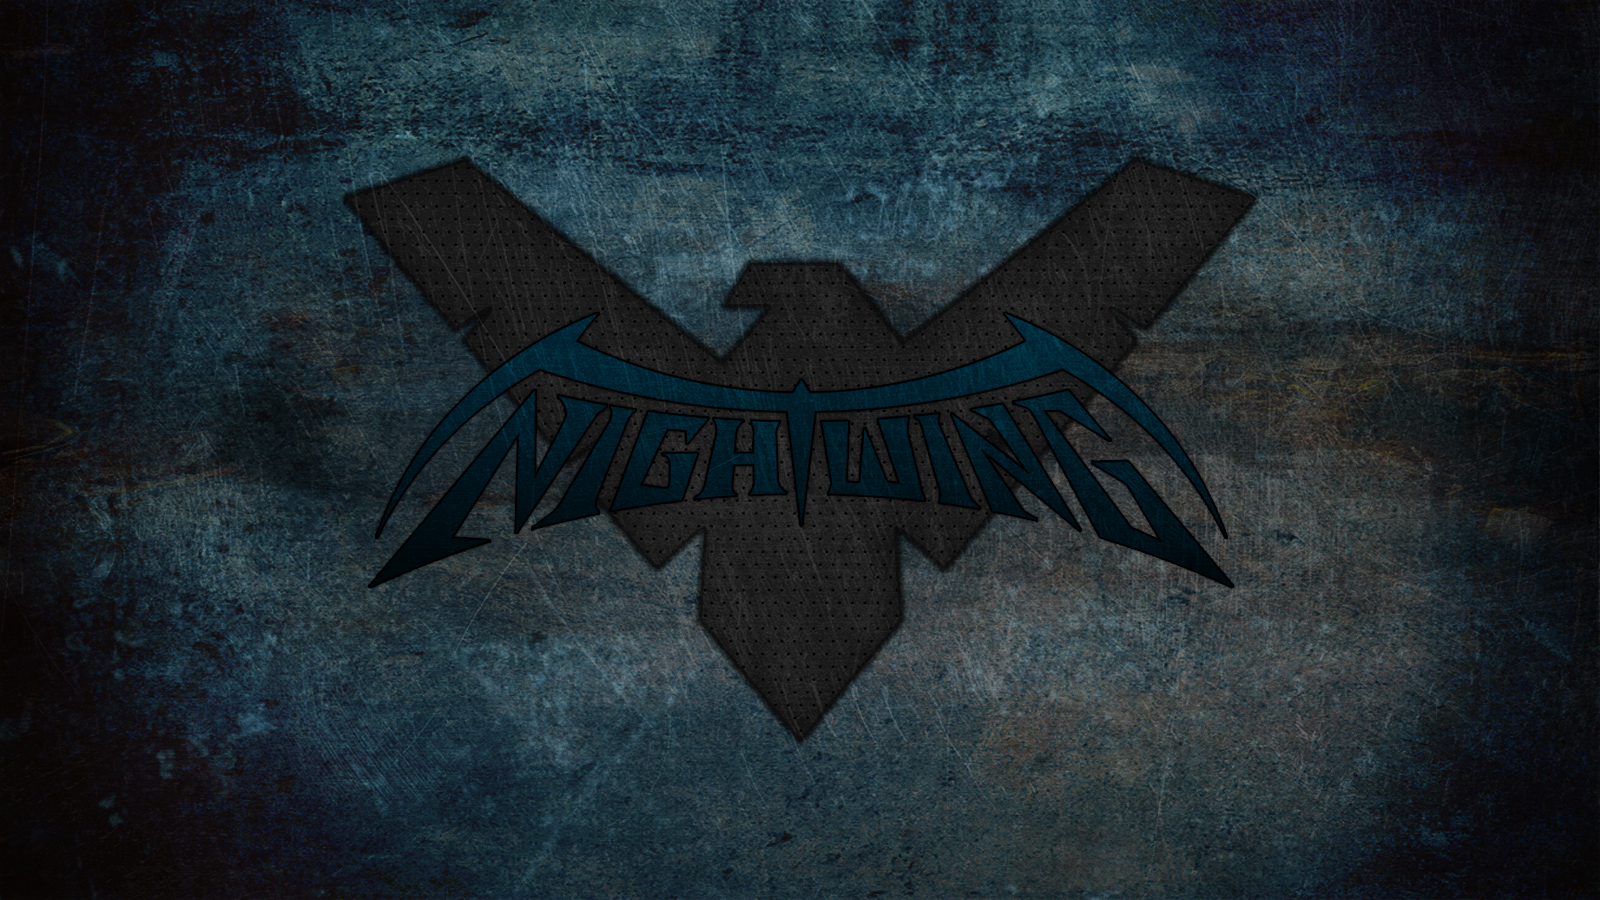 Nightwing Wallpaper and Background | 1600x900 | ID:436603